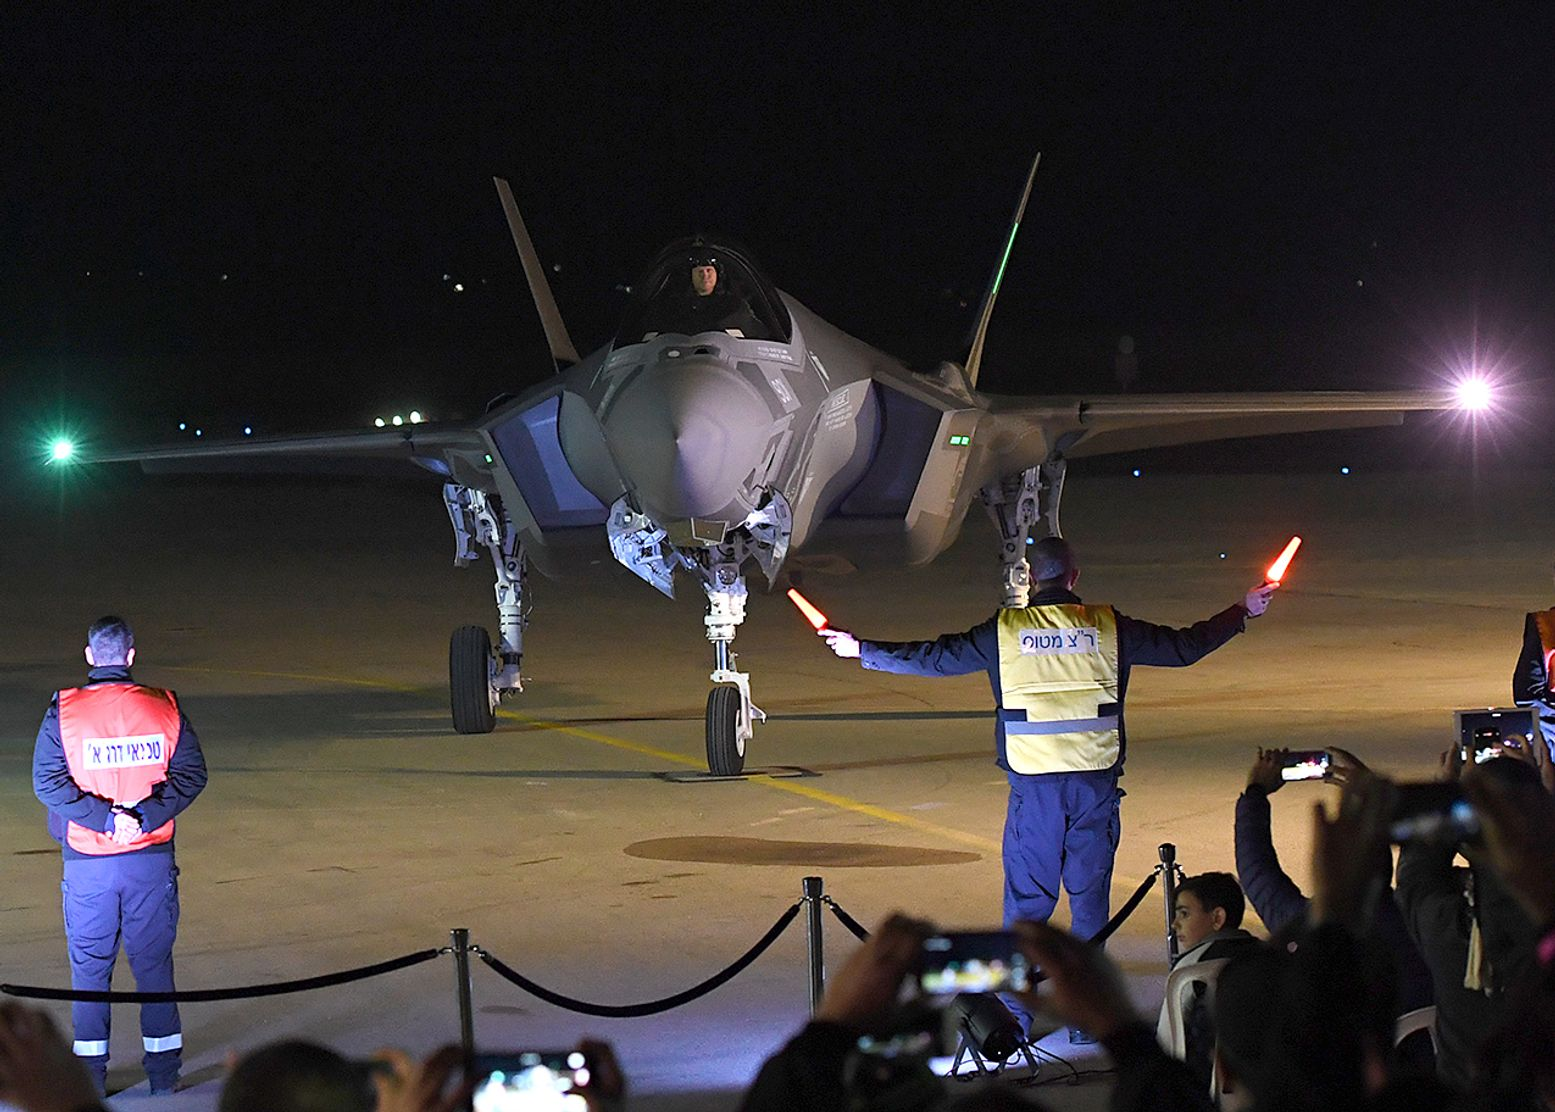 Israel's Air Force (Maybe F-35s) Went to War in Iraq?